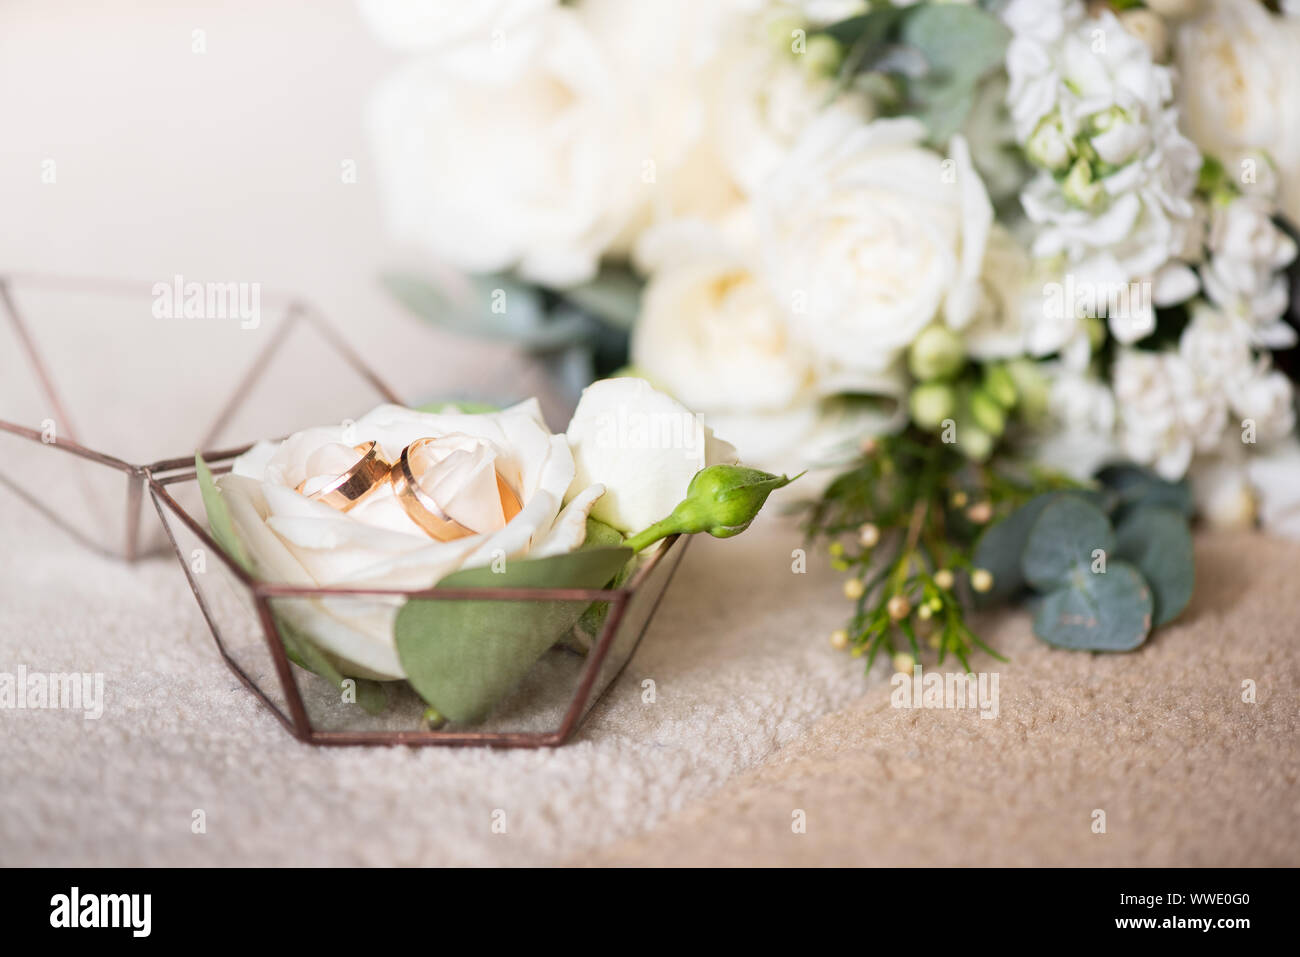 Two wedding rings in beautiful box and bouquet of flowers. Themes of engagement, declaration of love, wedding day, florist services. Stock Photo